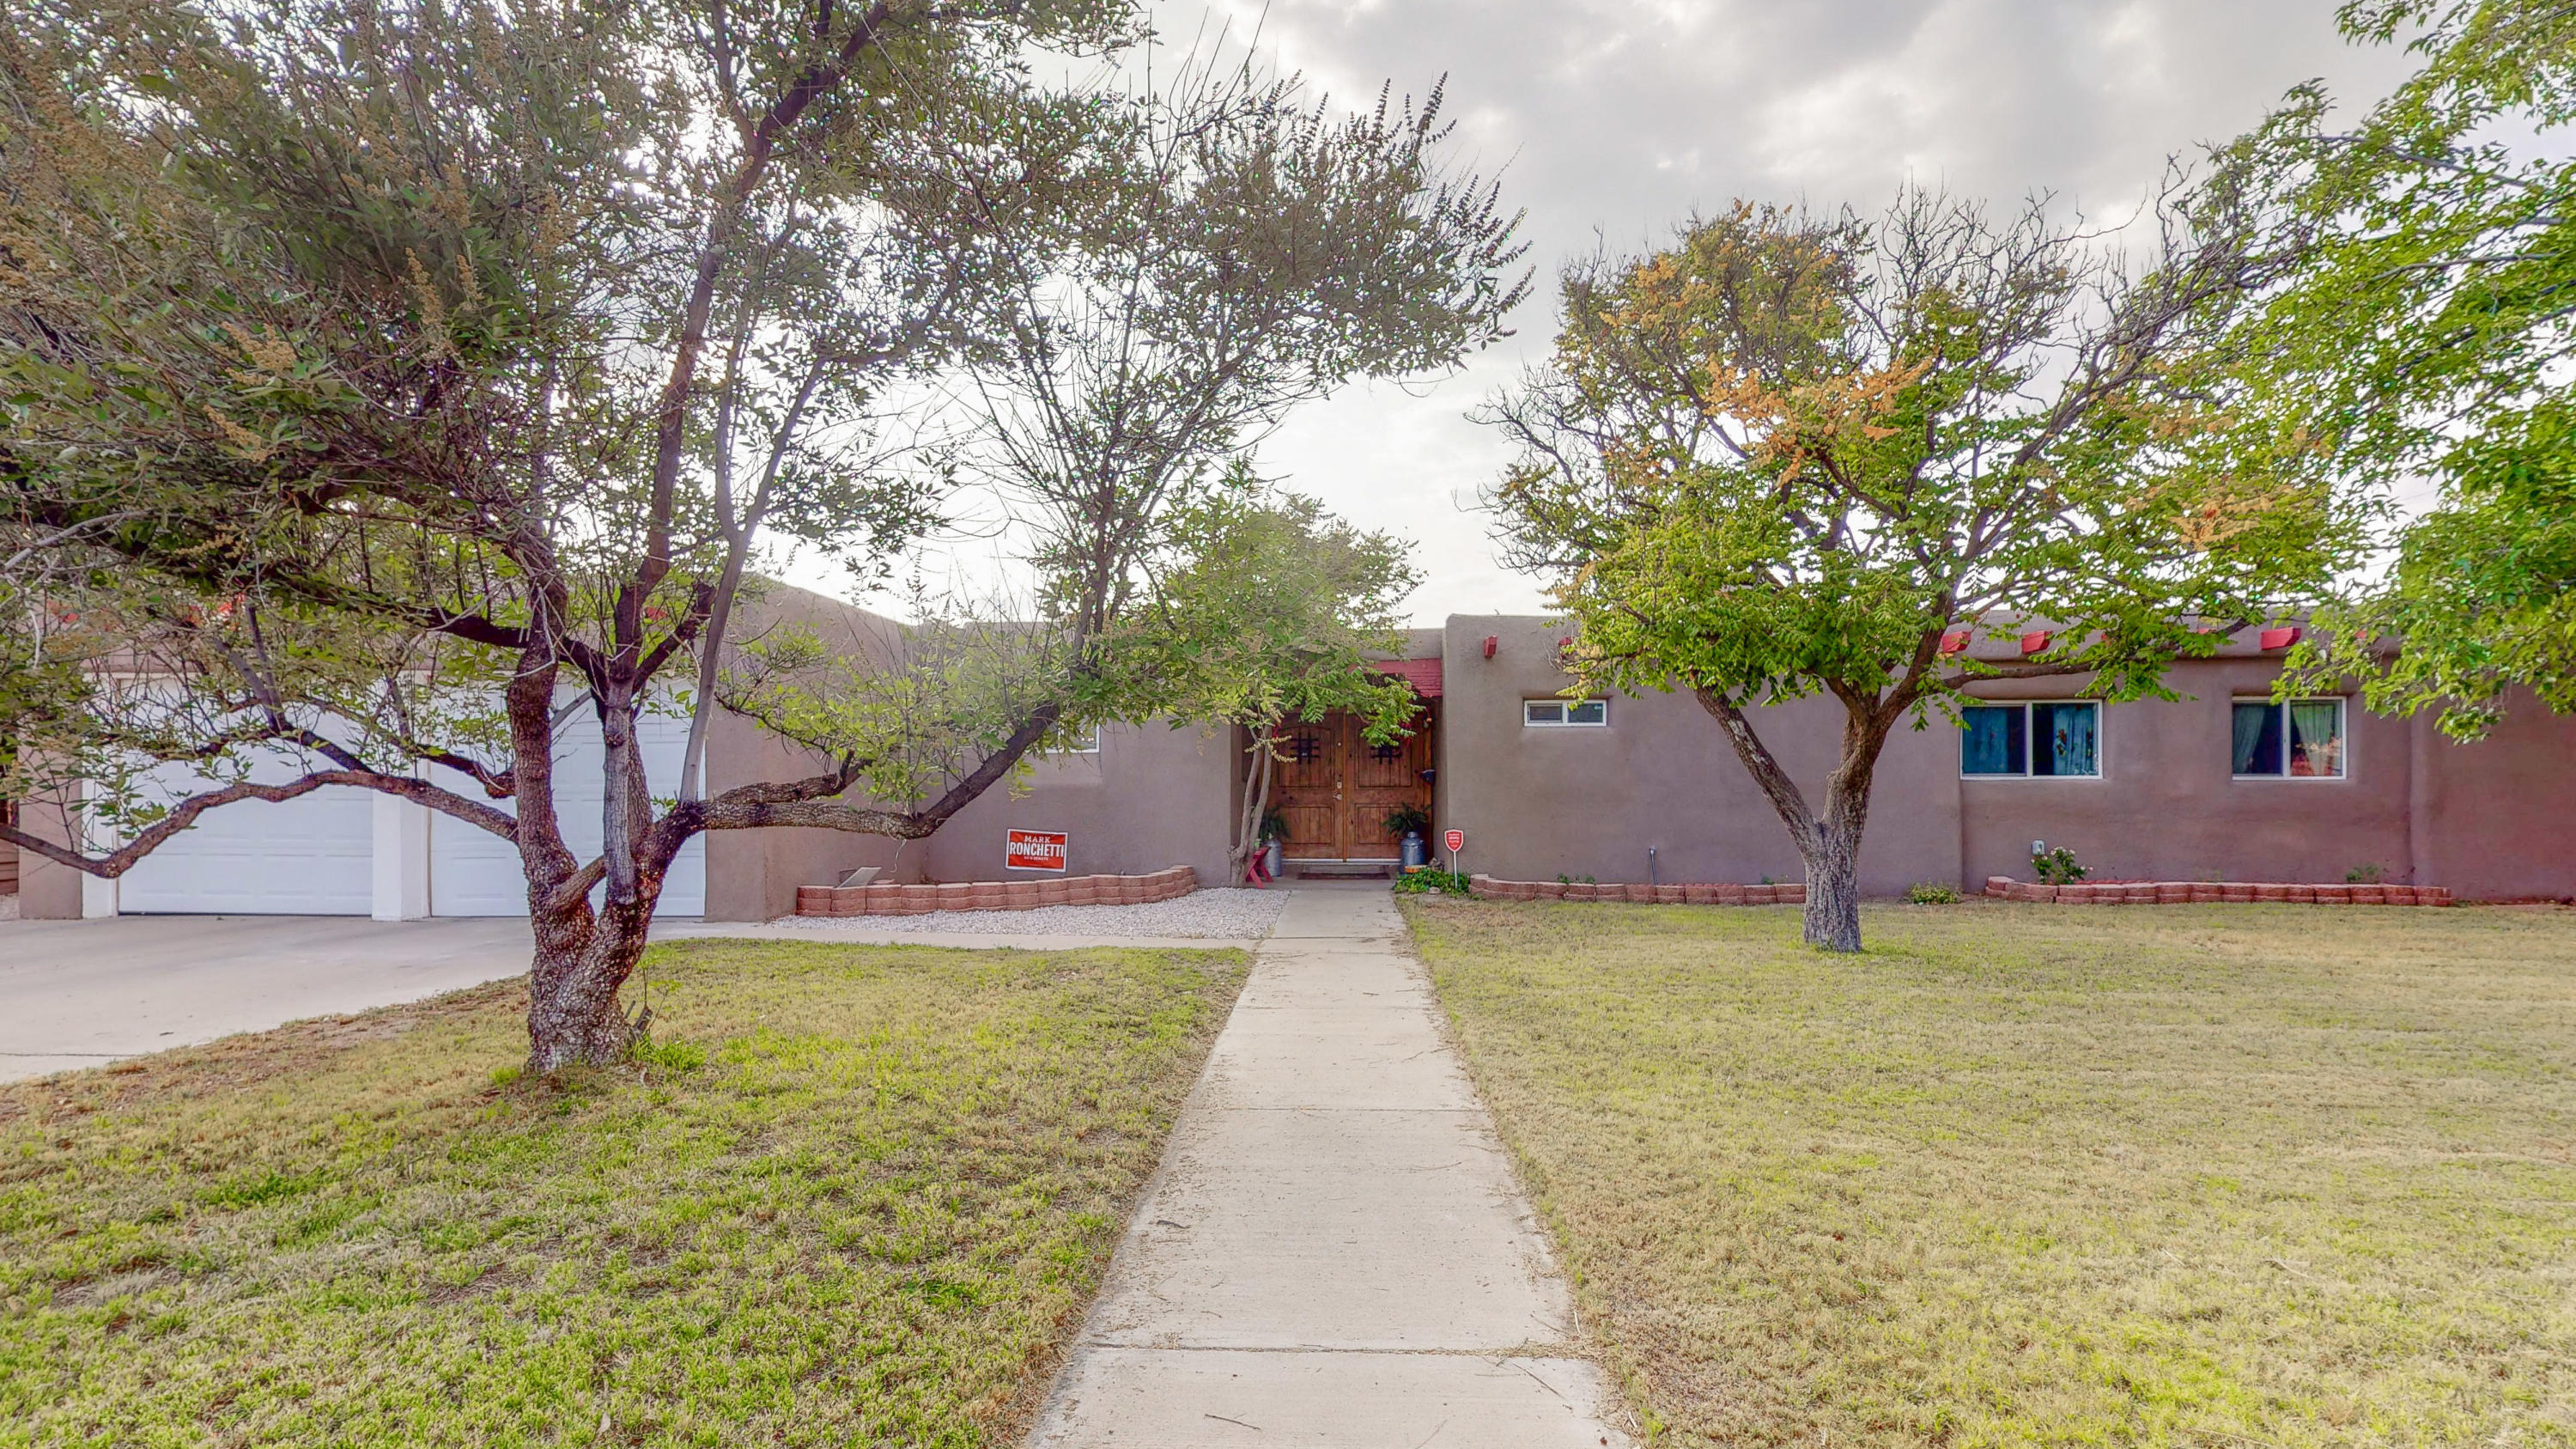 Welcome home to this 4-bedroom, 2-bath home in the Siesta Hills neighborhood. Newly remodeled inside and out, this spacious home includes a large family room with hard wood flooring. Wood-burning fireplace + a separate dining area. Kitchen includes a gas oven & microwave along with separate breakfast nook. Separate and spacious laundry room and large 2-car garage + covered patio and RV parking/backyard space. Close proximity to KAFB, restaurants & shopping. Make this the perfect home for you. Schedule your showing today!